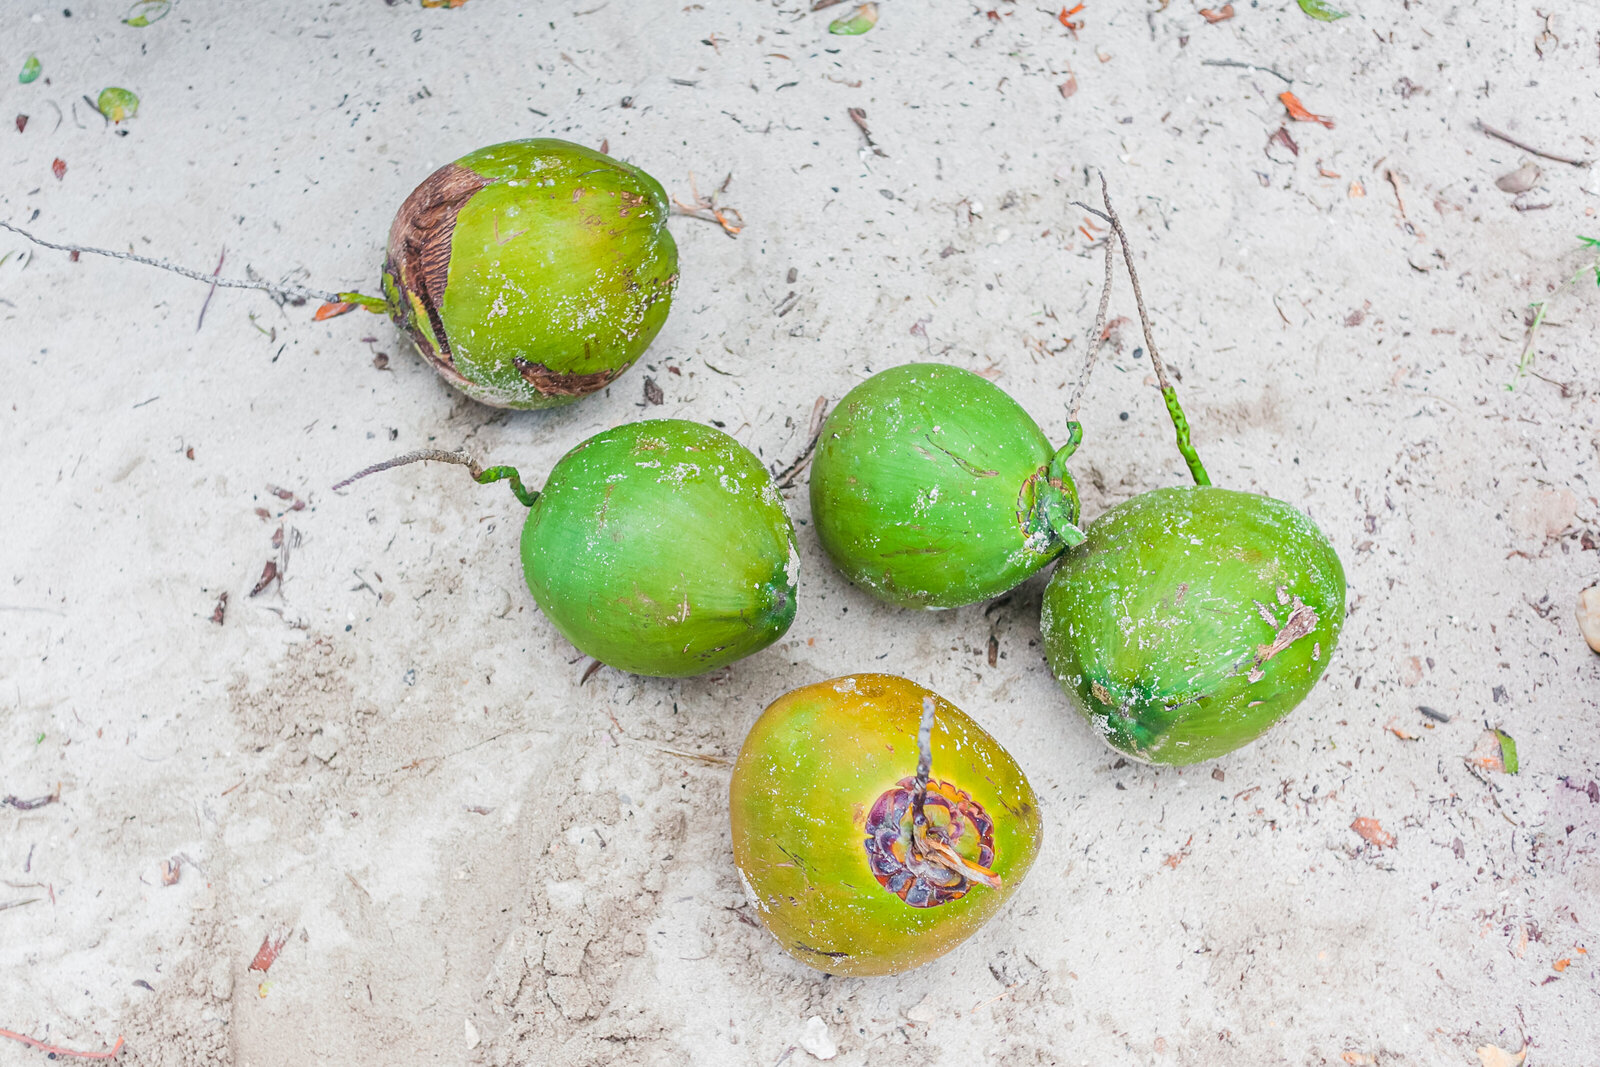 035-KBP-beach-cocnuts-mexico-tulum-vacation